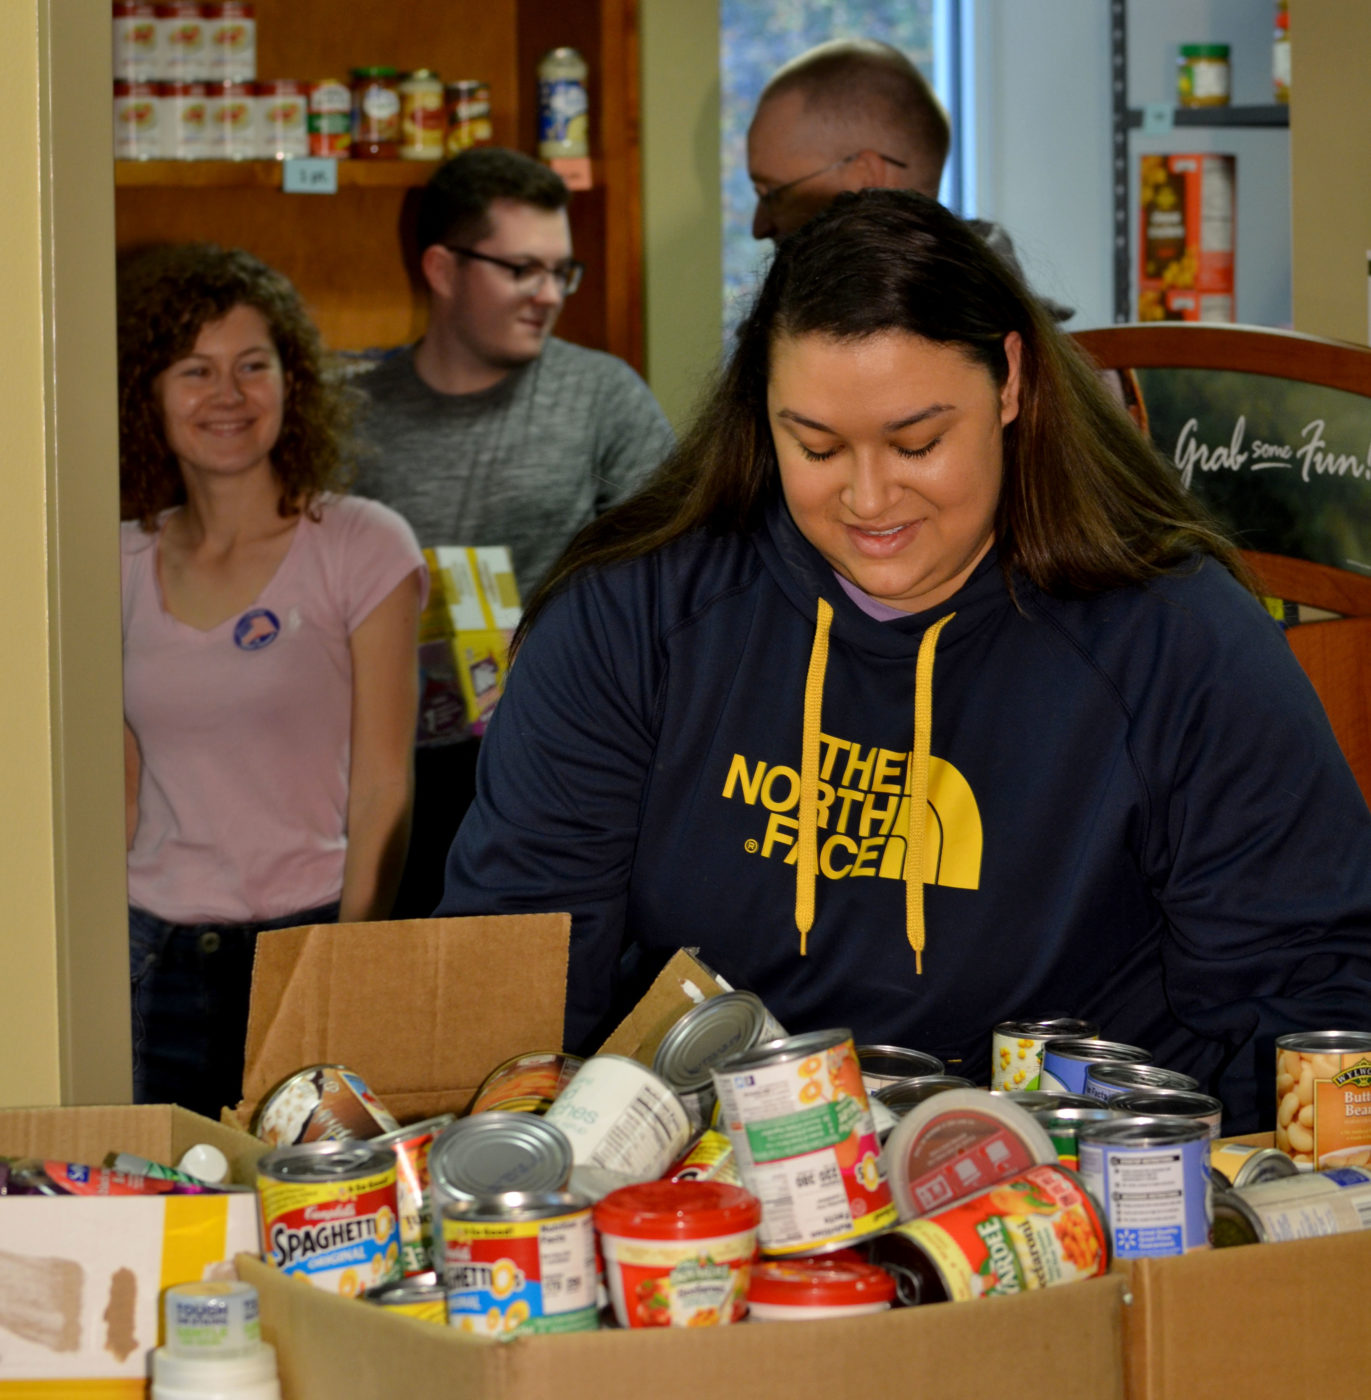 Volunteers help to sort and shelve food pantry stock at Patrick Henry Community College.